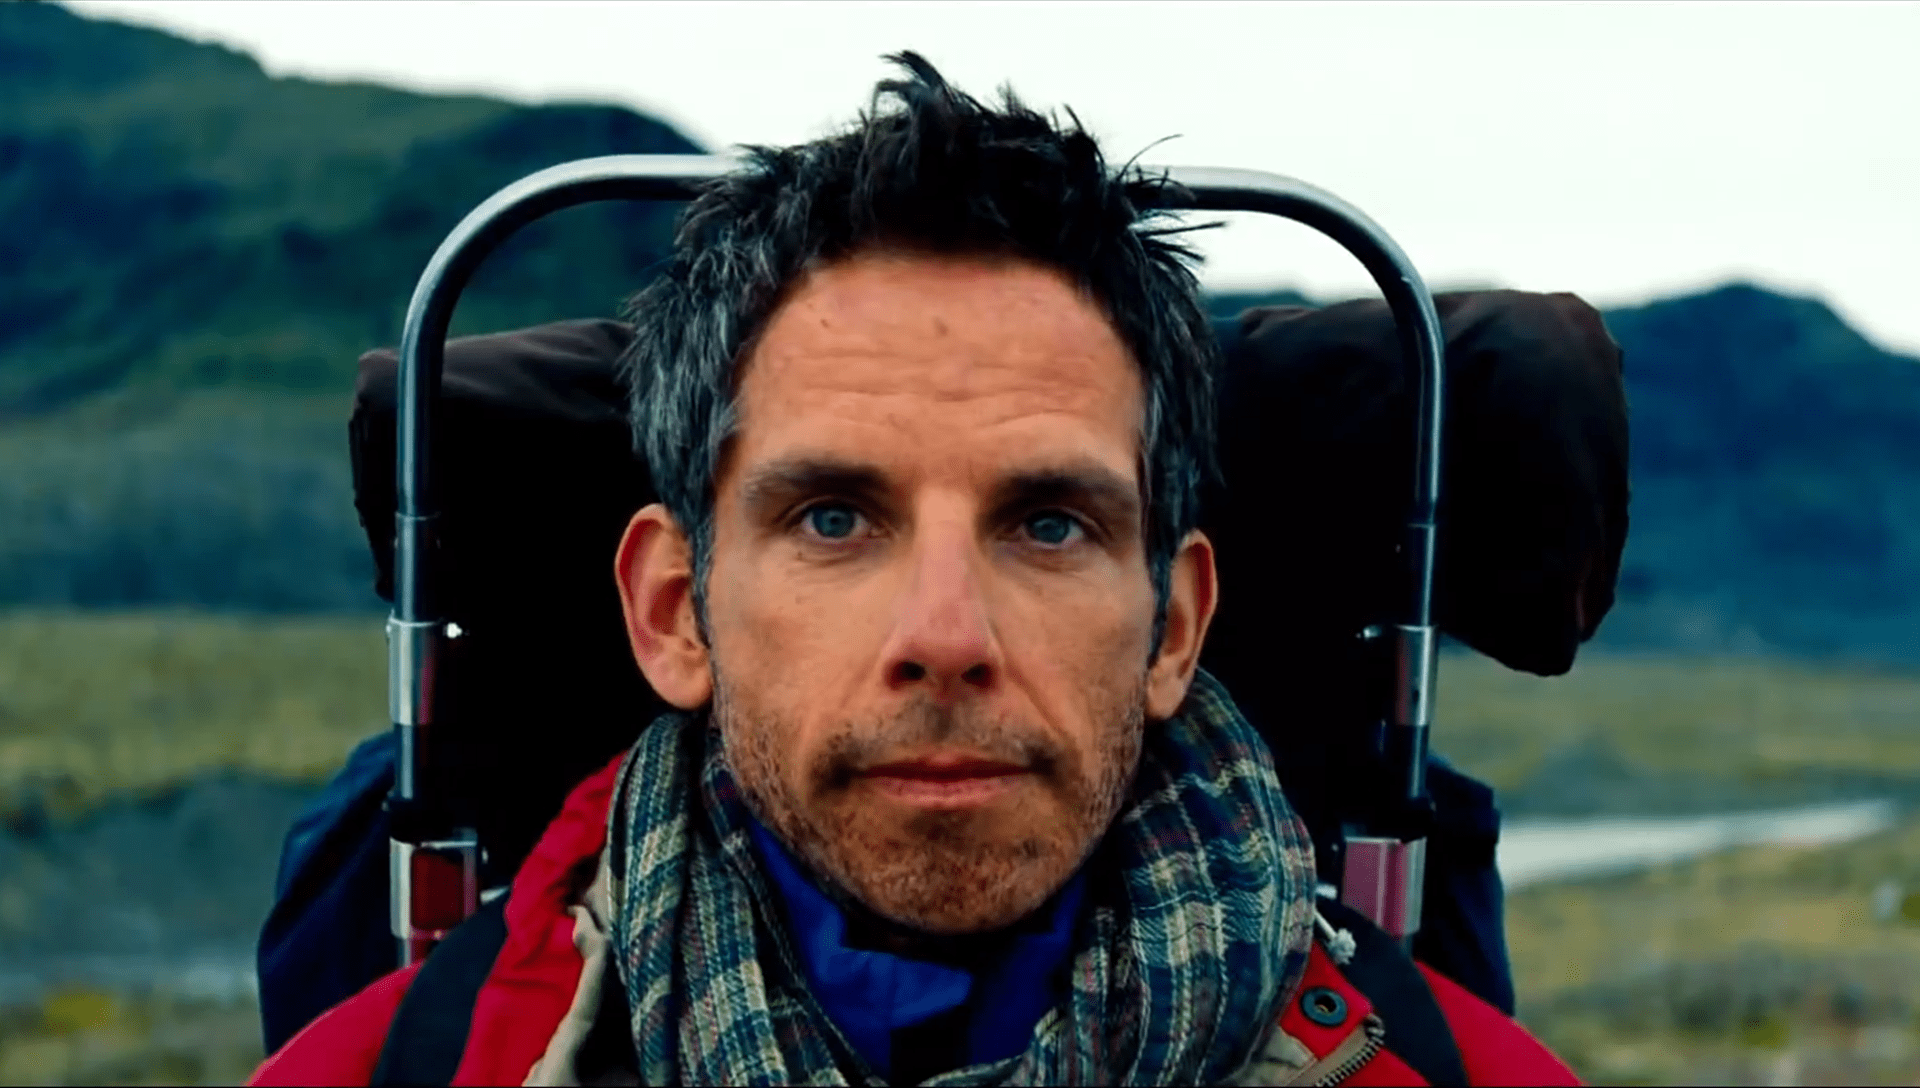 Ben Stiller Widescreen for desktop